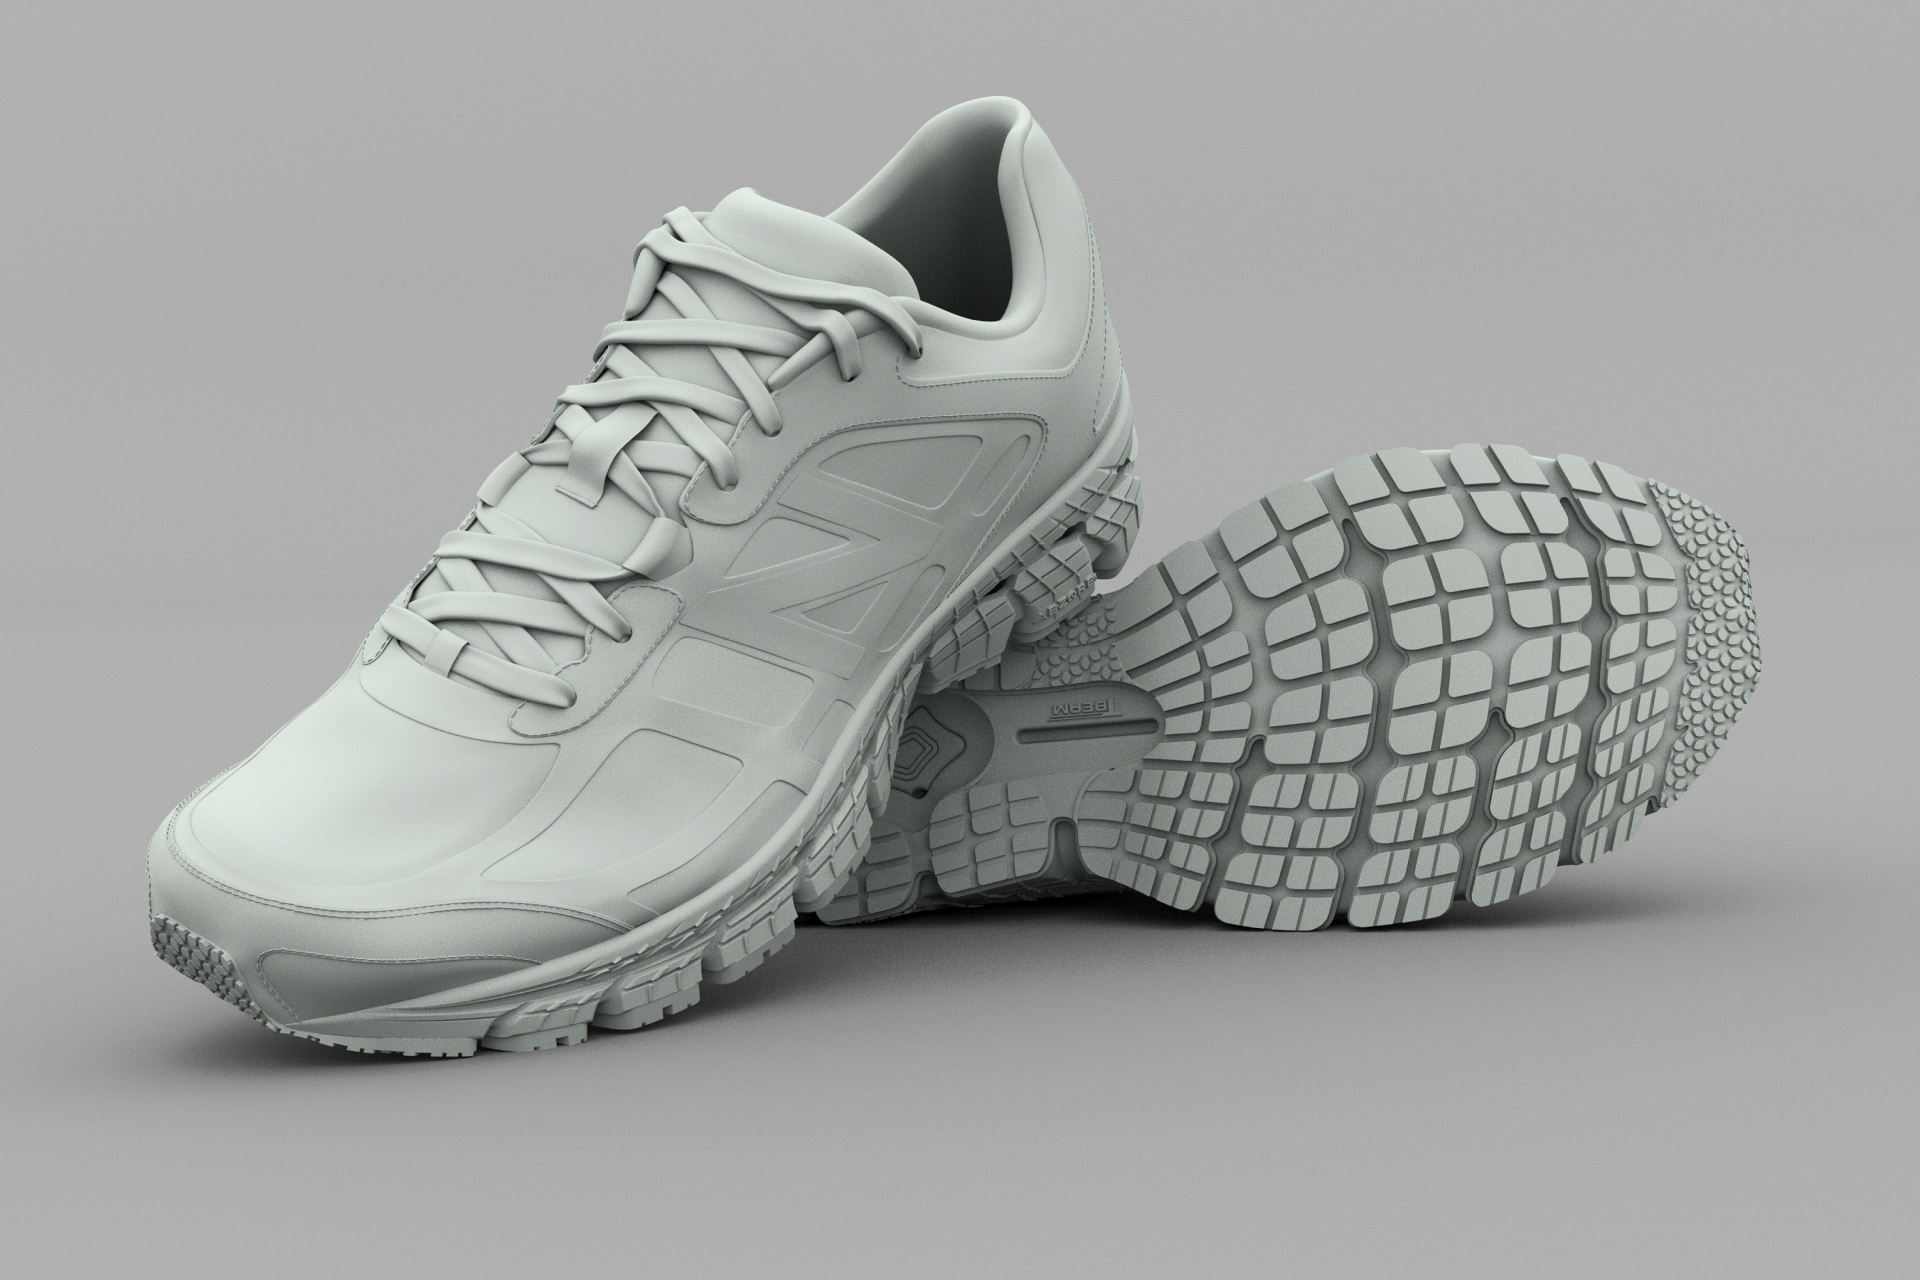 Simple gray shaded render